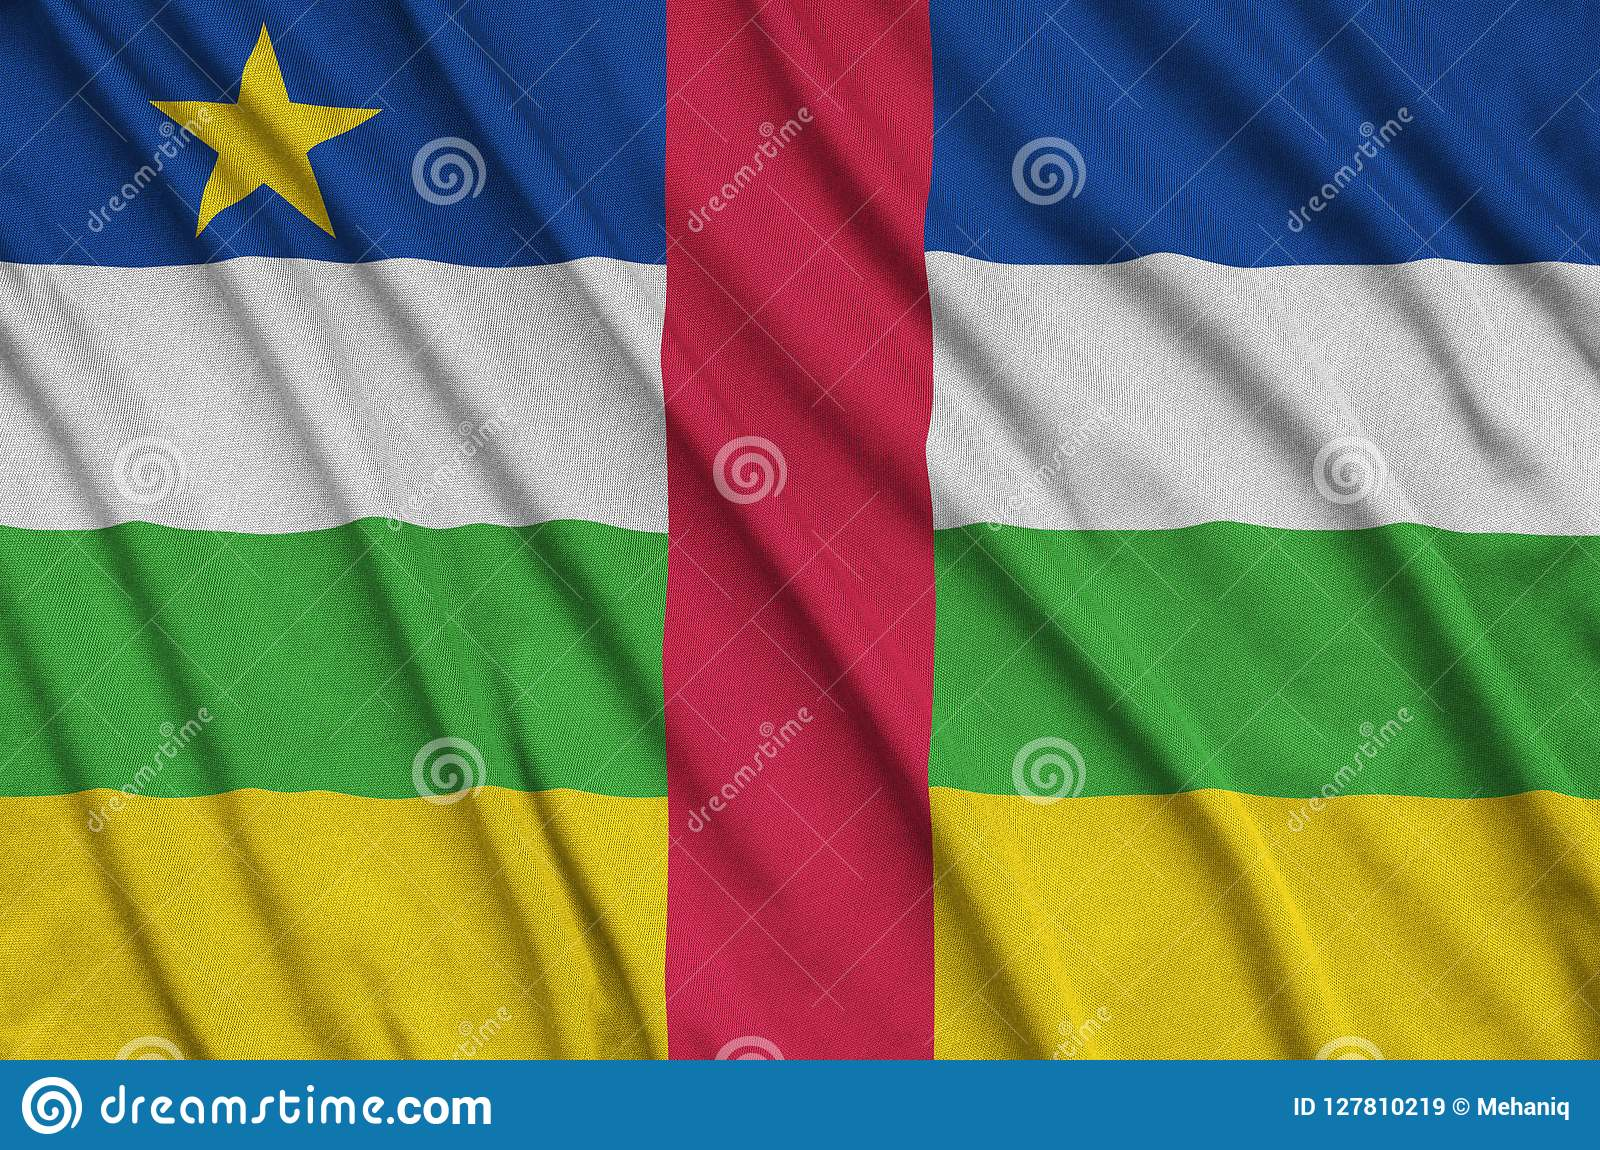 Central African Republic flag is depicted on a sports cloth fabric with many folds. Sport team banner